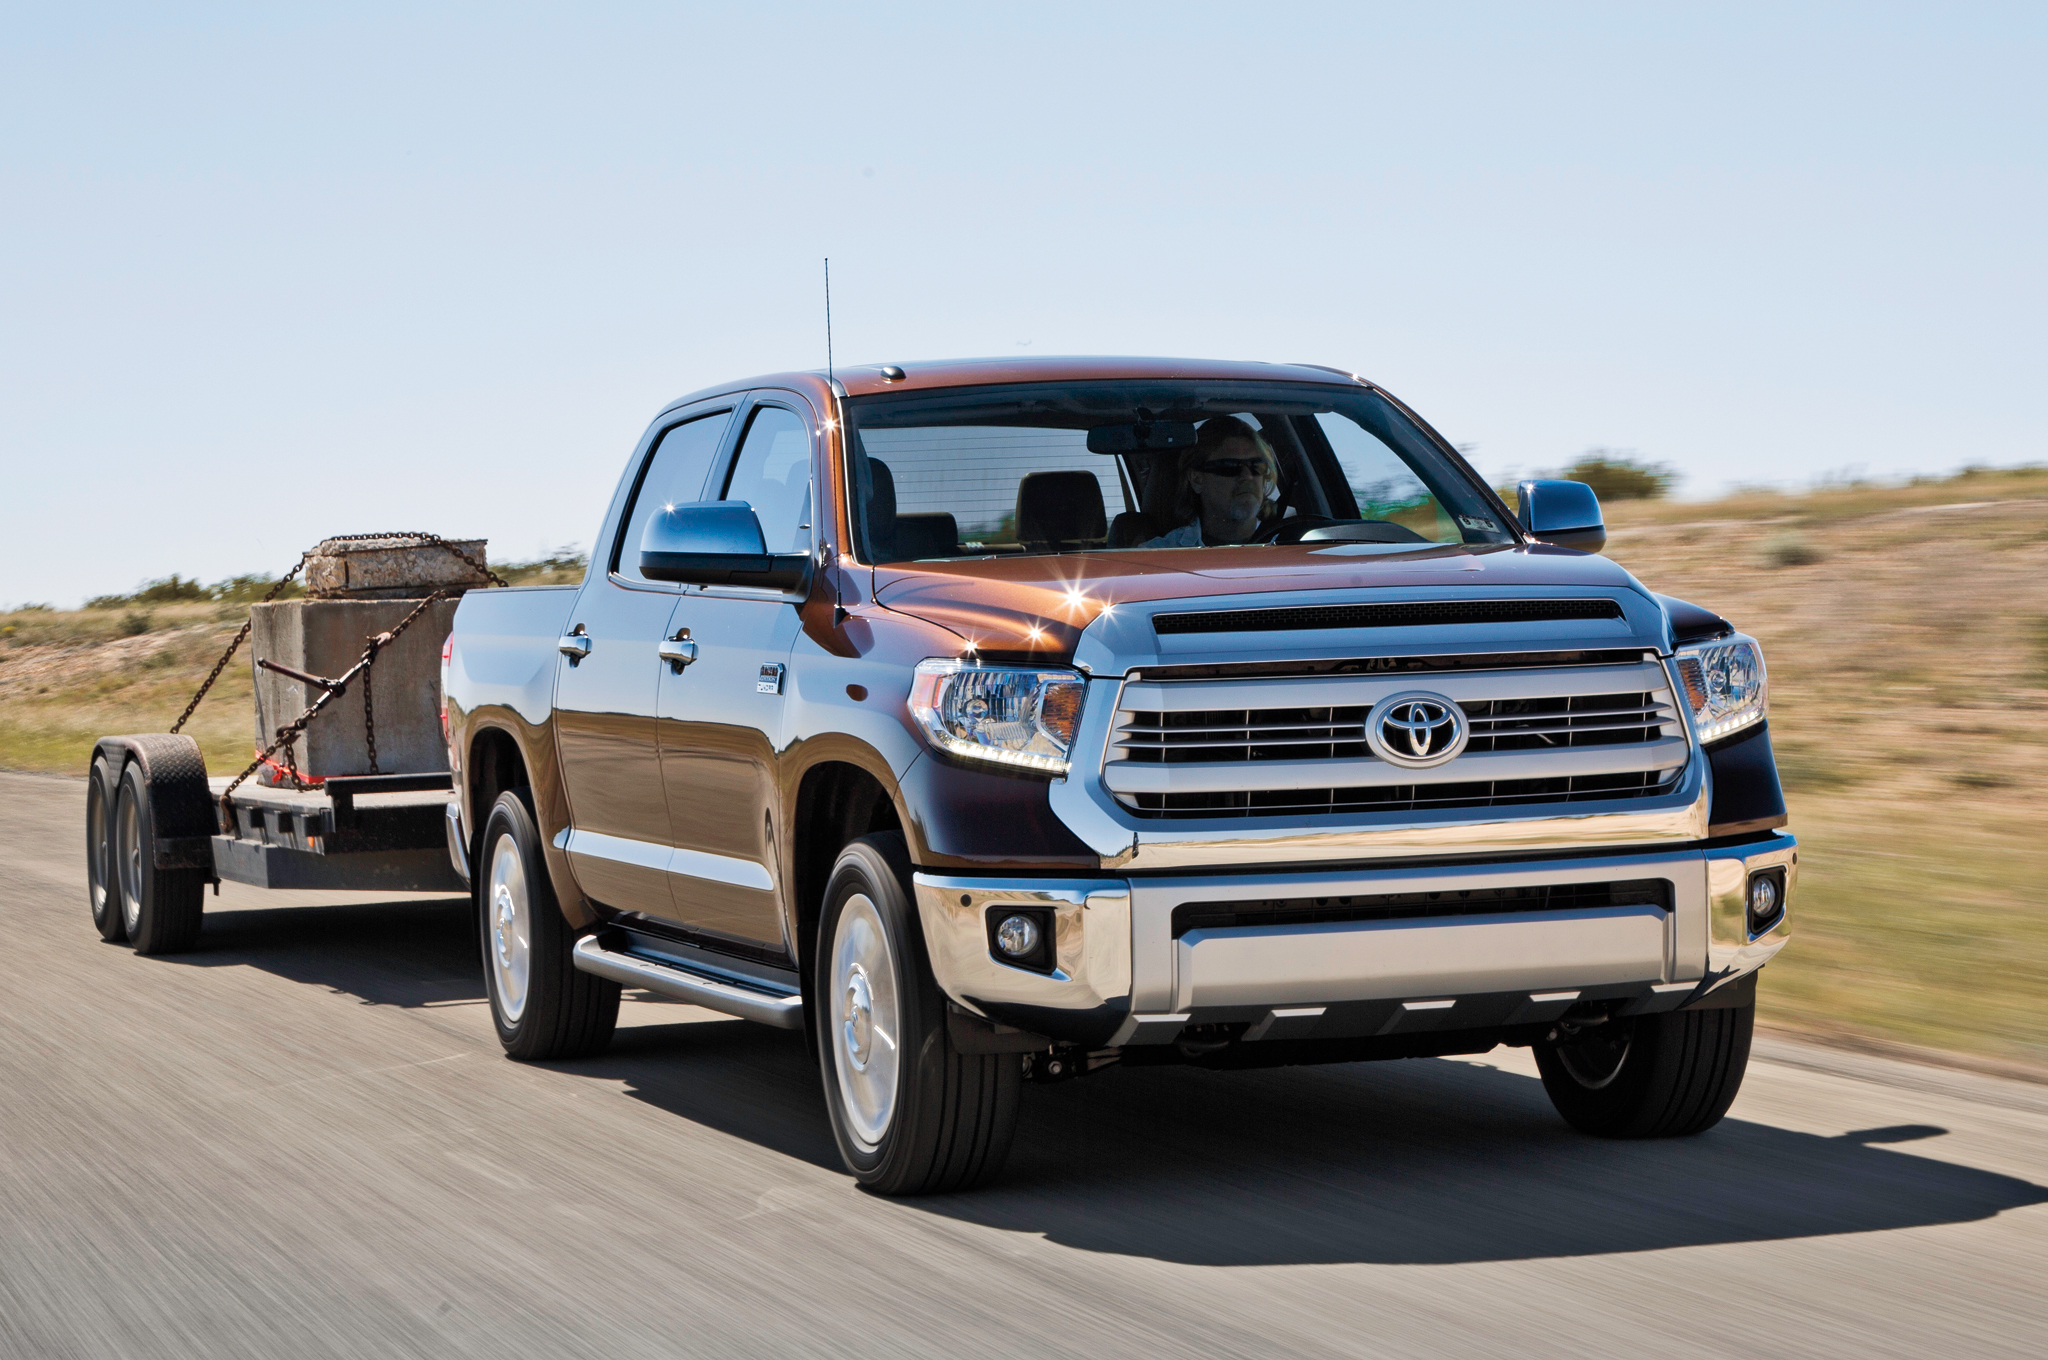 2014 Toyota Tundra 1794 Edition CrewMax 4x4 First Test